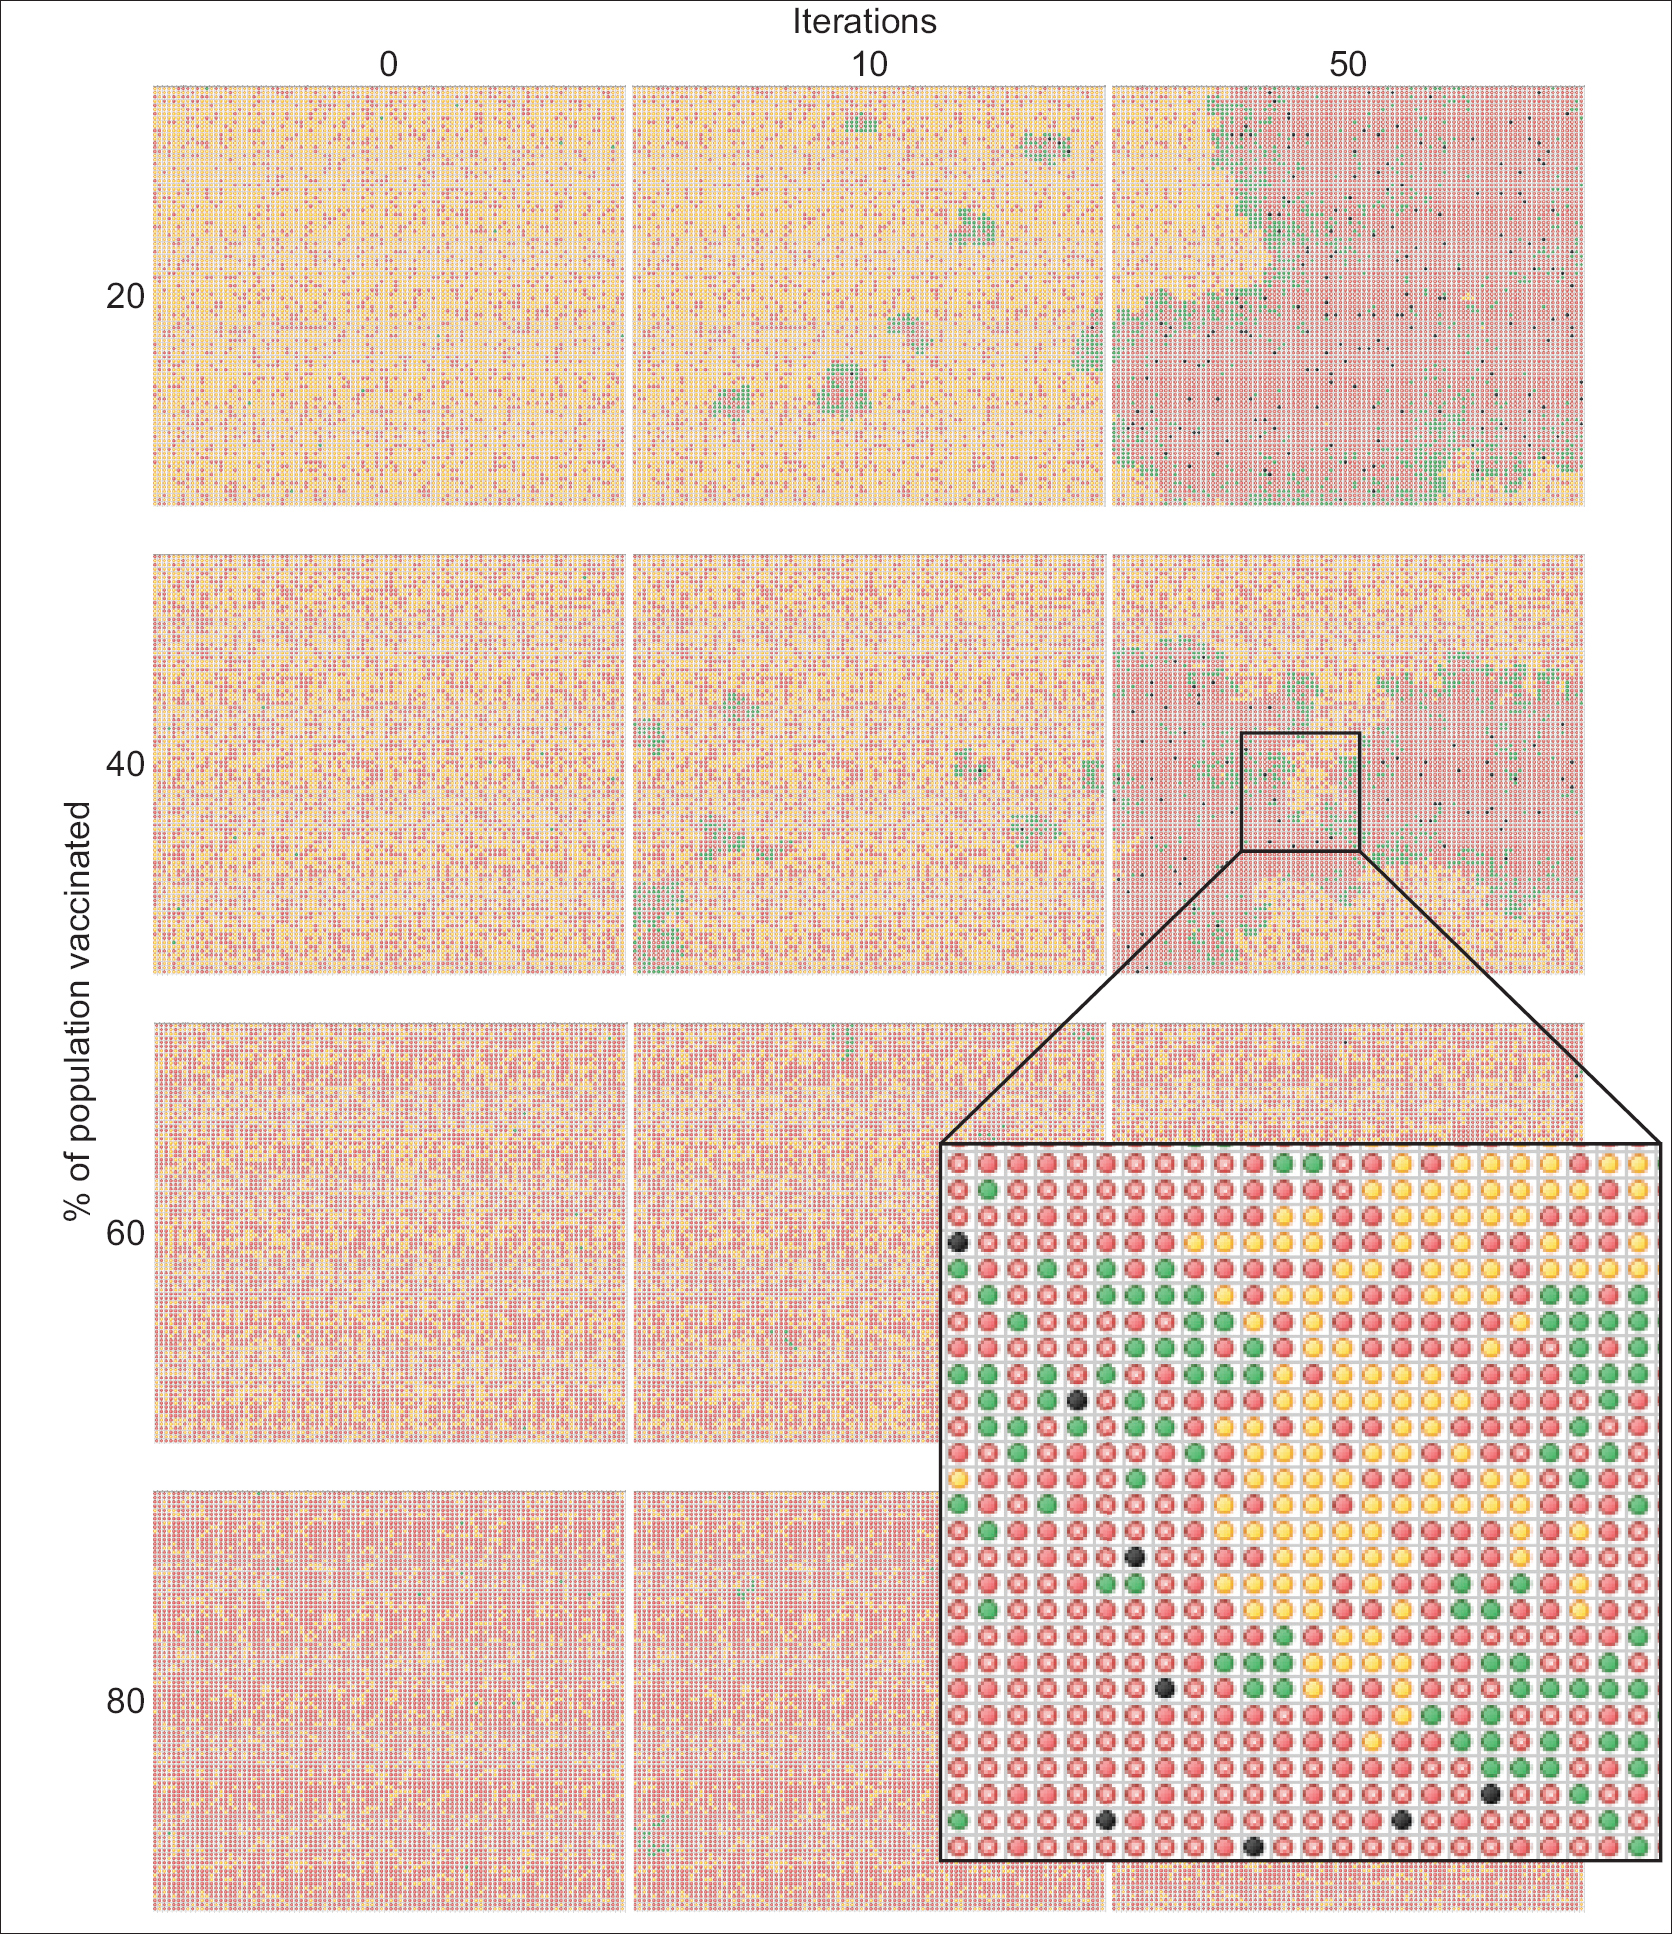 Figure 3: Vaccine computer simulator output. The series of images depict the progression of the measles virus as a function of both time (iterations) and vaccination coverage. The simulation was written in a Microsoft Excel spreadsheet to facilitate manipulation by students. Conditional formatting was used to represent the status of individuals within a population. Green = sick, red = vaccinated, yellow = unvaccinated, black = dead, red with white